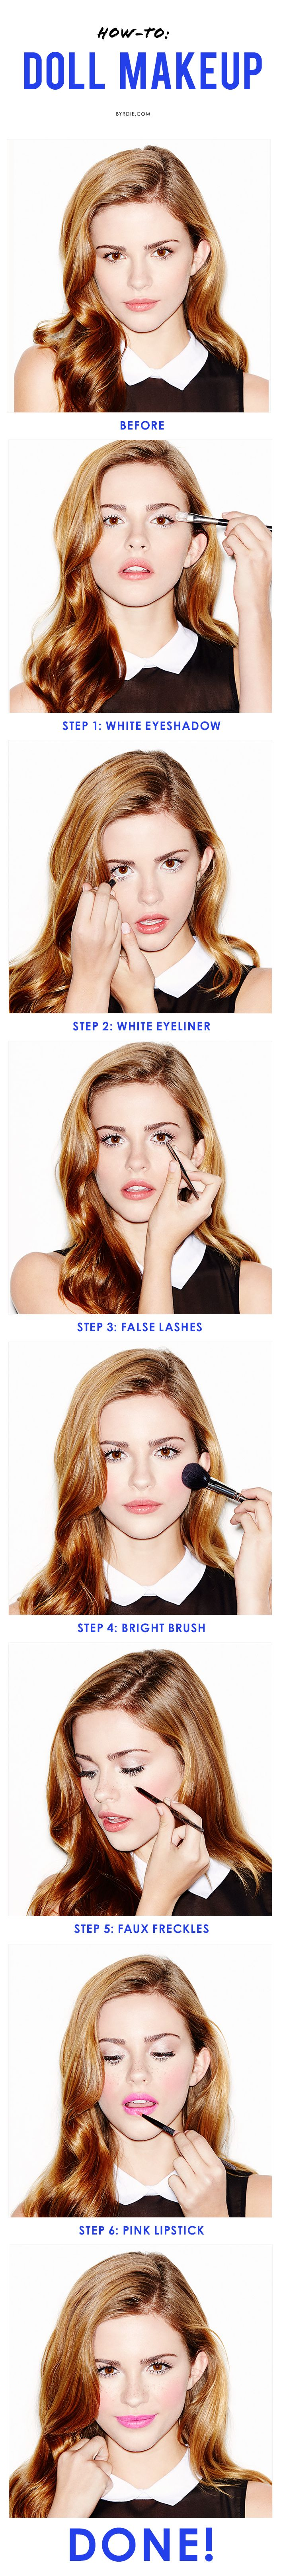 6 steps to the prettiest doll makeup look with this easy tutorial. (via @byrdiebeauty)